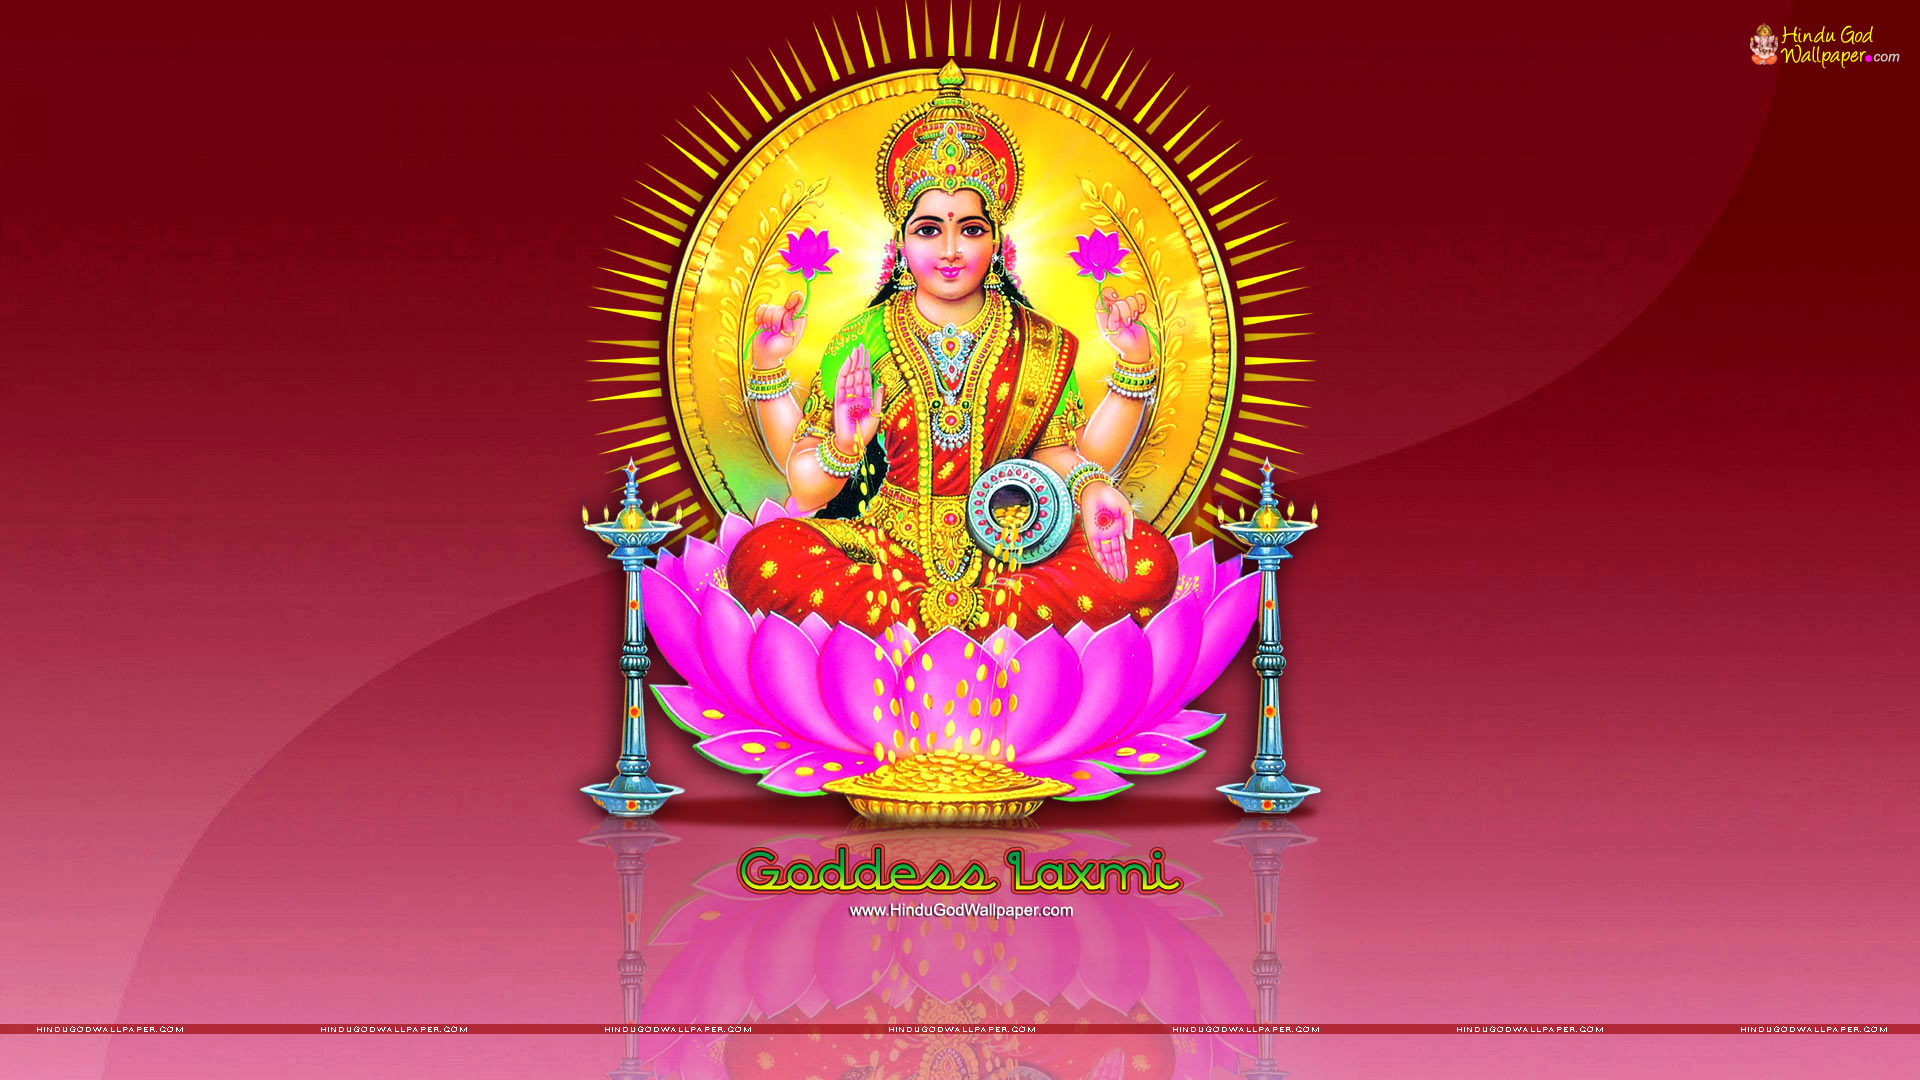 laxmi wallpapers hd